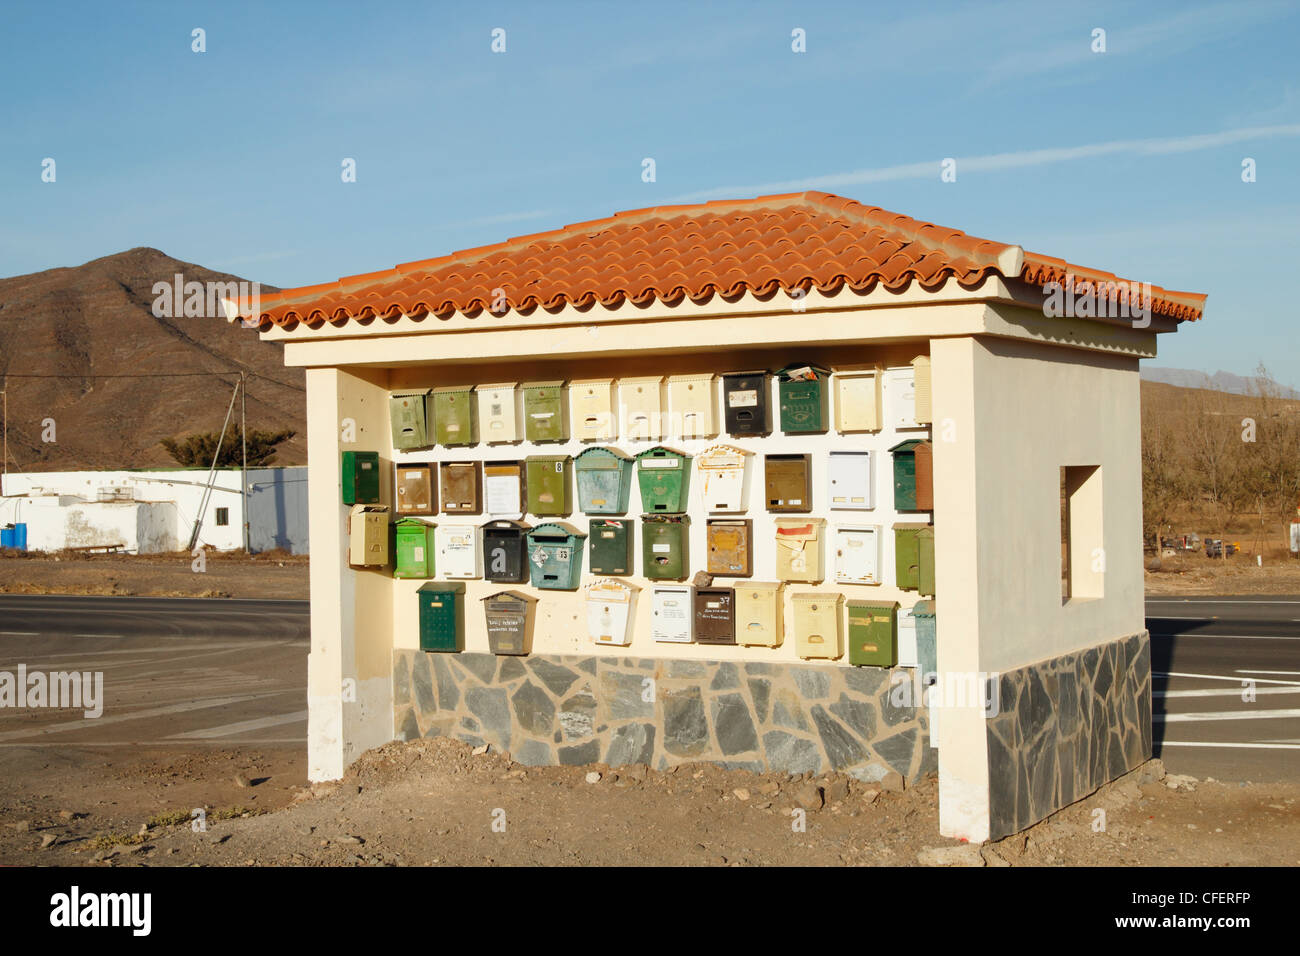 Mailboxes on bus shelter wall on Fuerteventura, Canary Islands, Spain - Stock Image